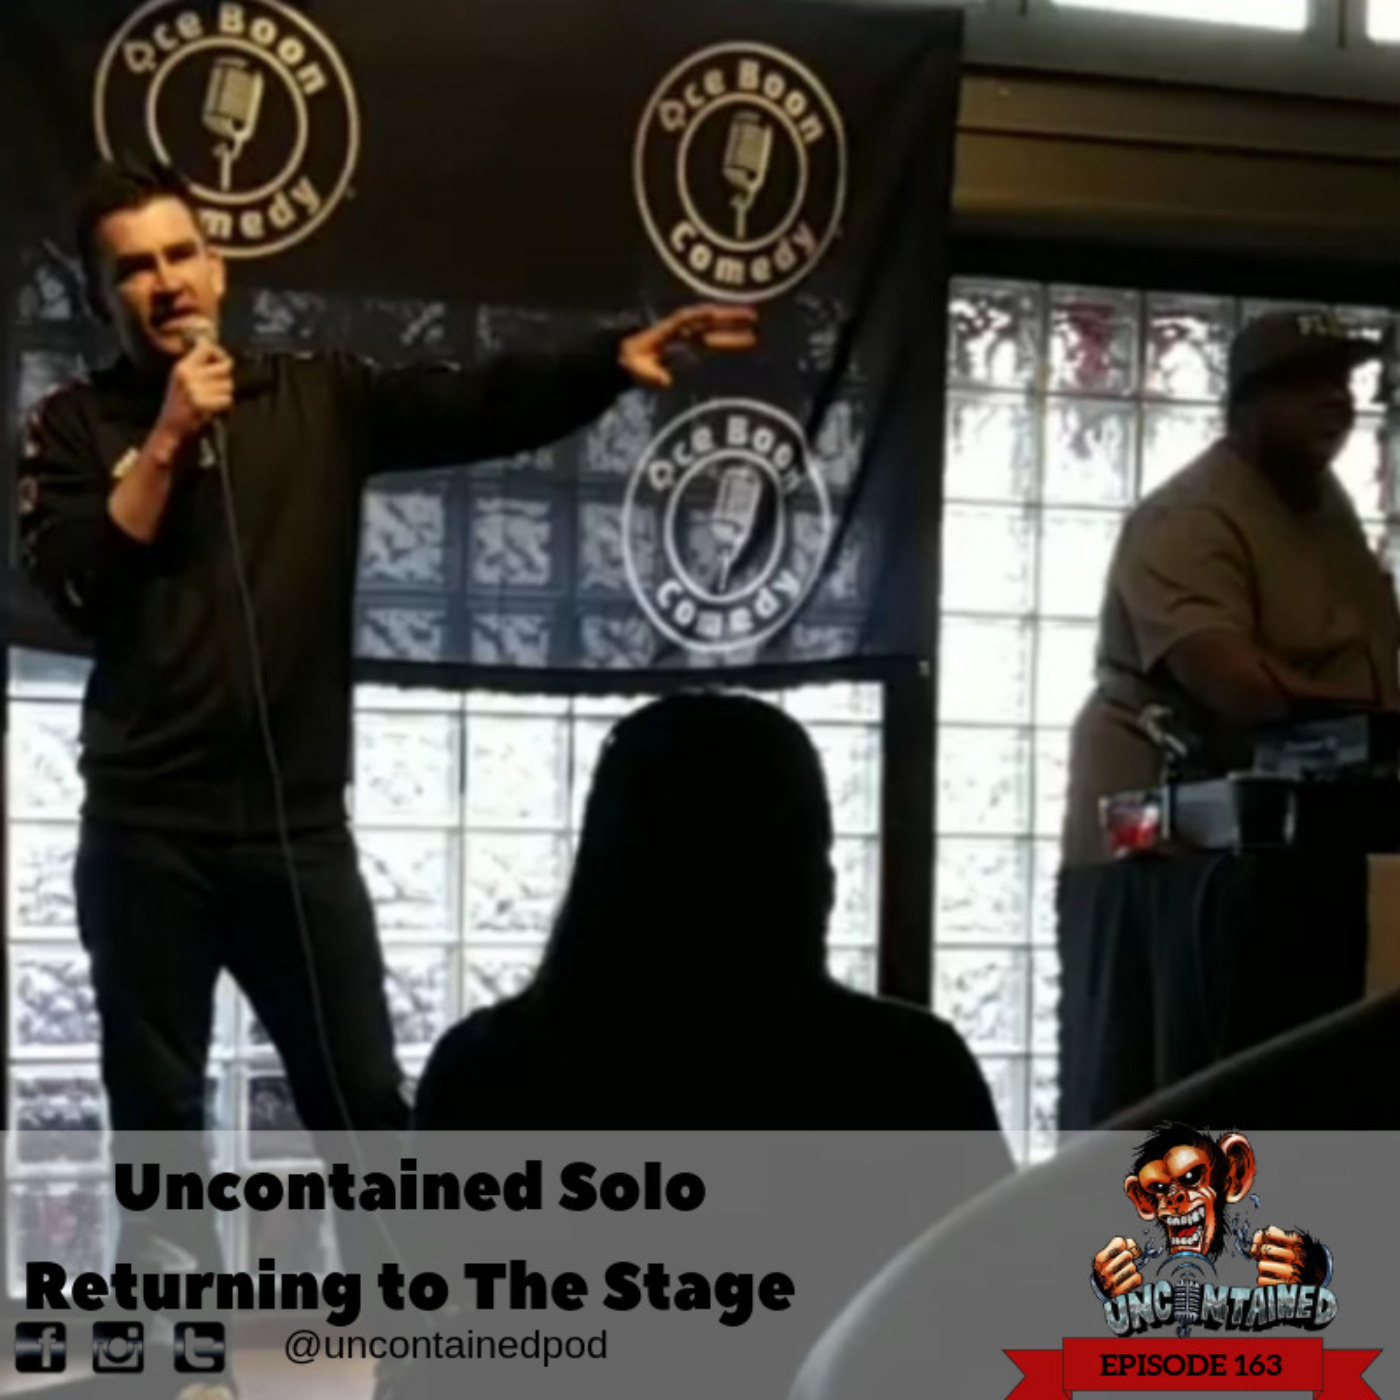 Episode 164: Uncontained Solo - Returning to the Stage